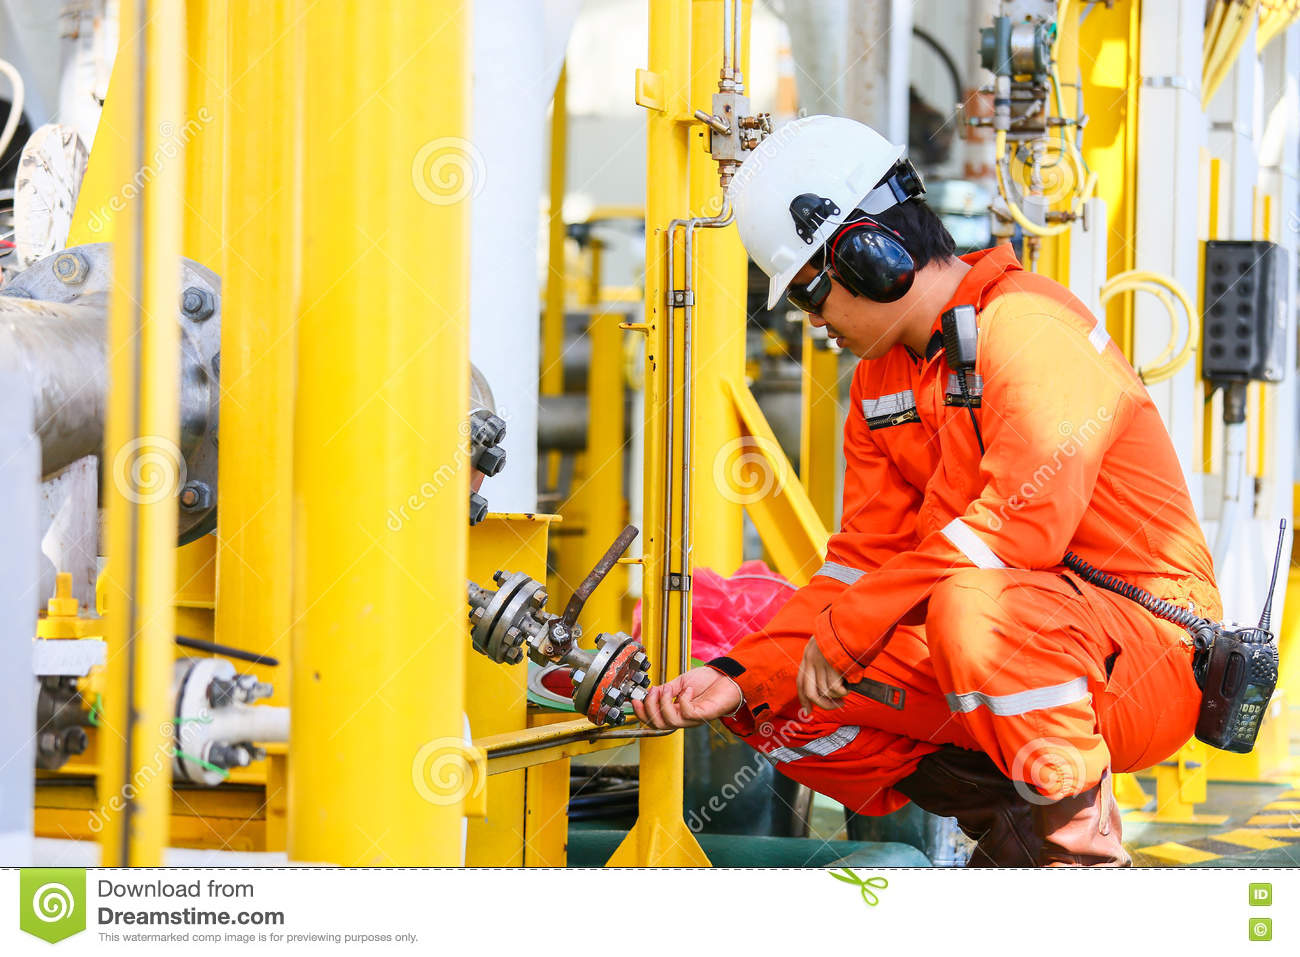 Operator recording operation of oil and gas process at oil and rig plant, offshore oil and gas industry, offshore oil and rig